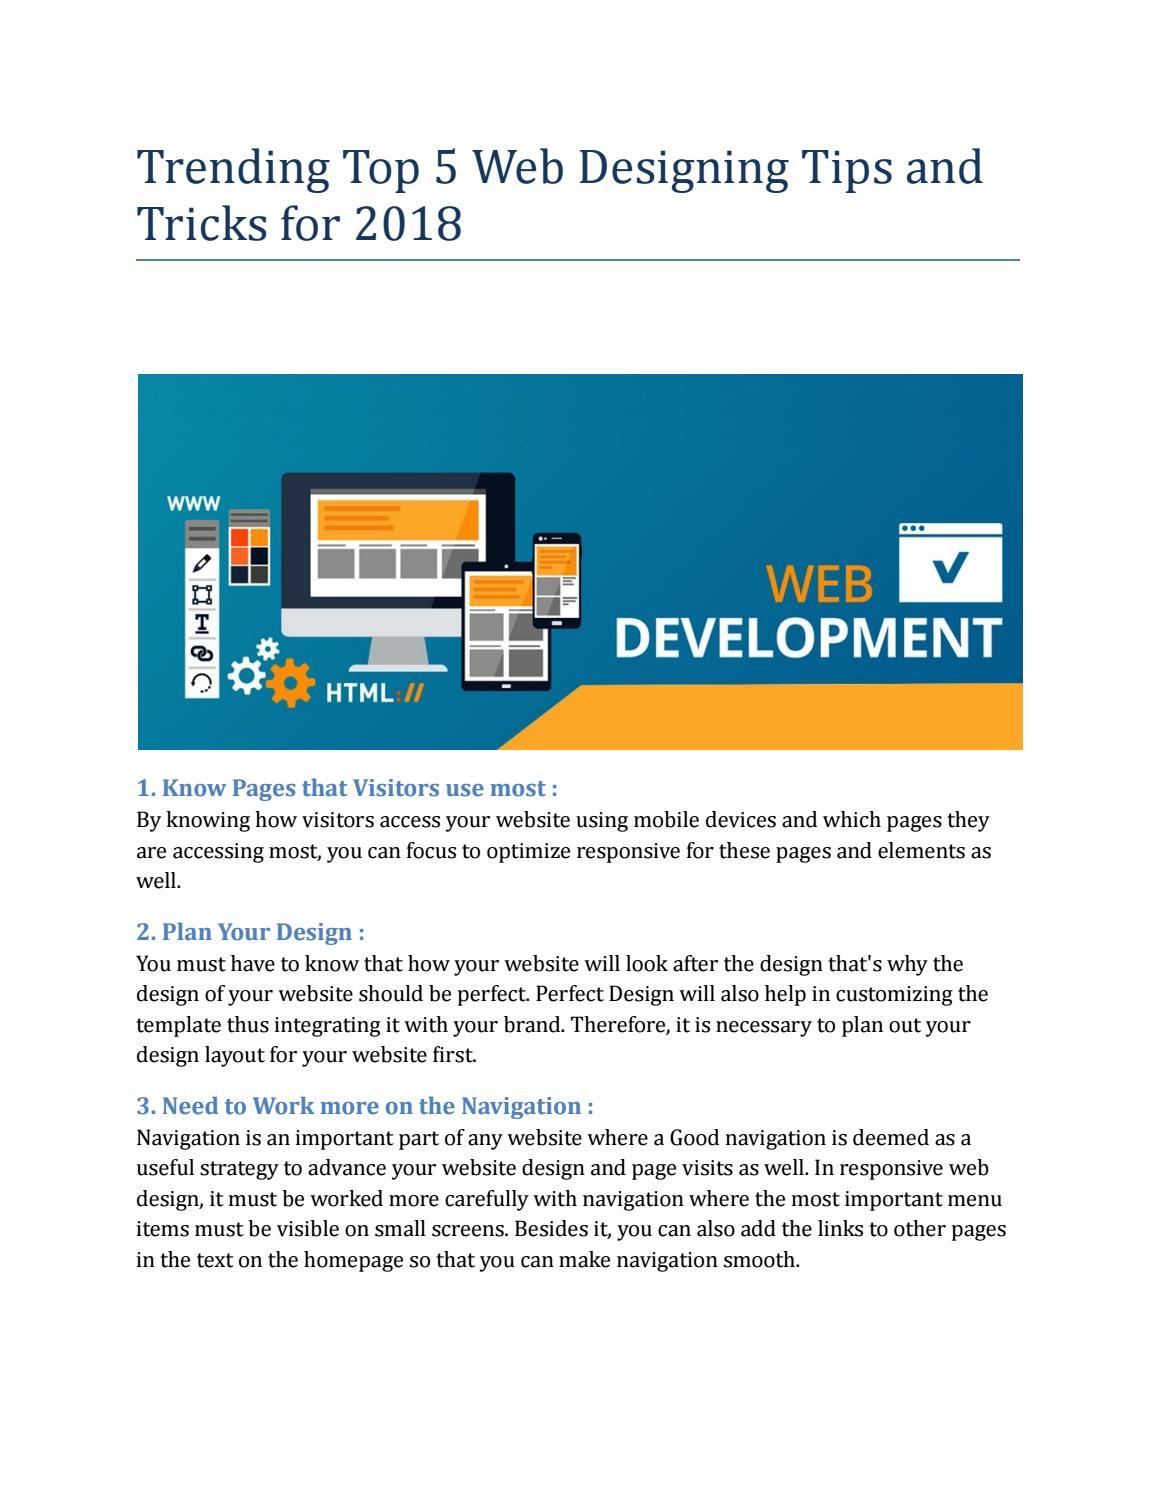 Trending Top 5 Web Designing Tips And Tricks For 2018 By Muthu Metaforum Issuu